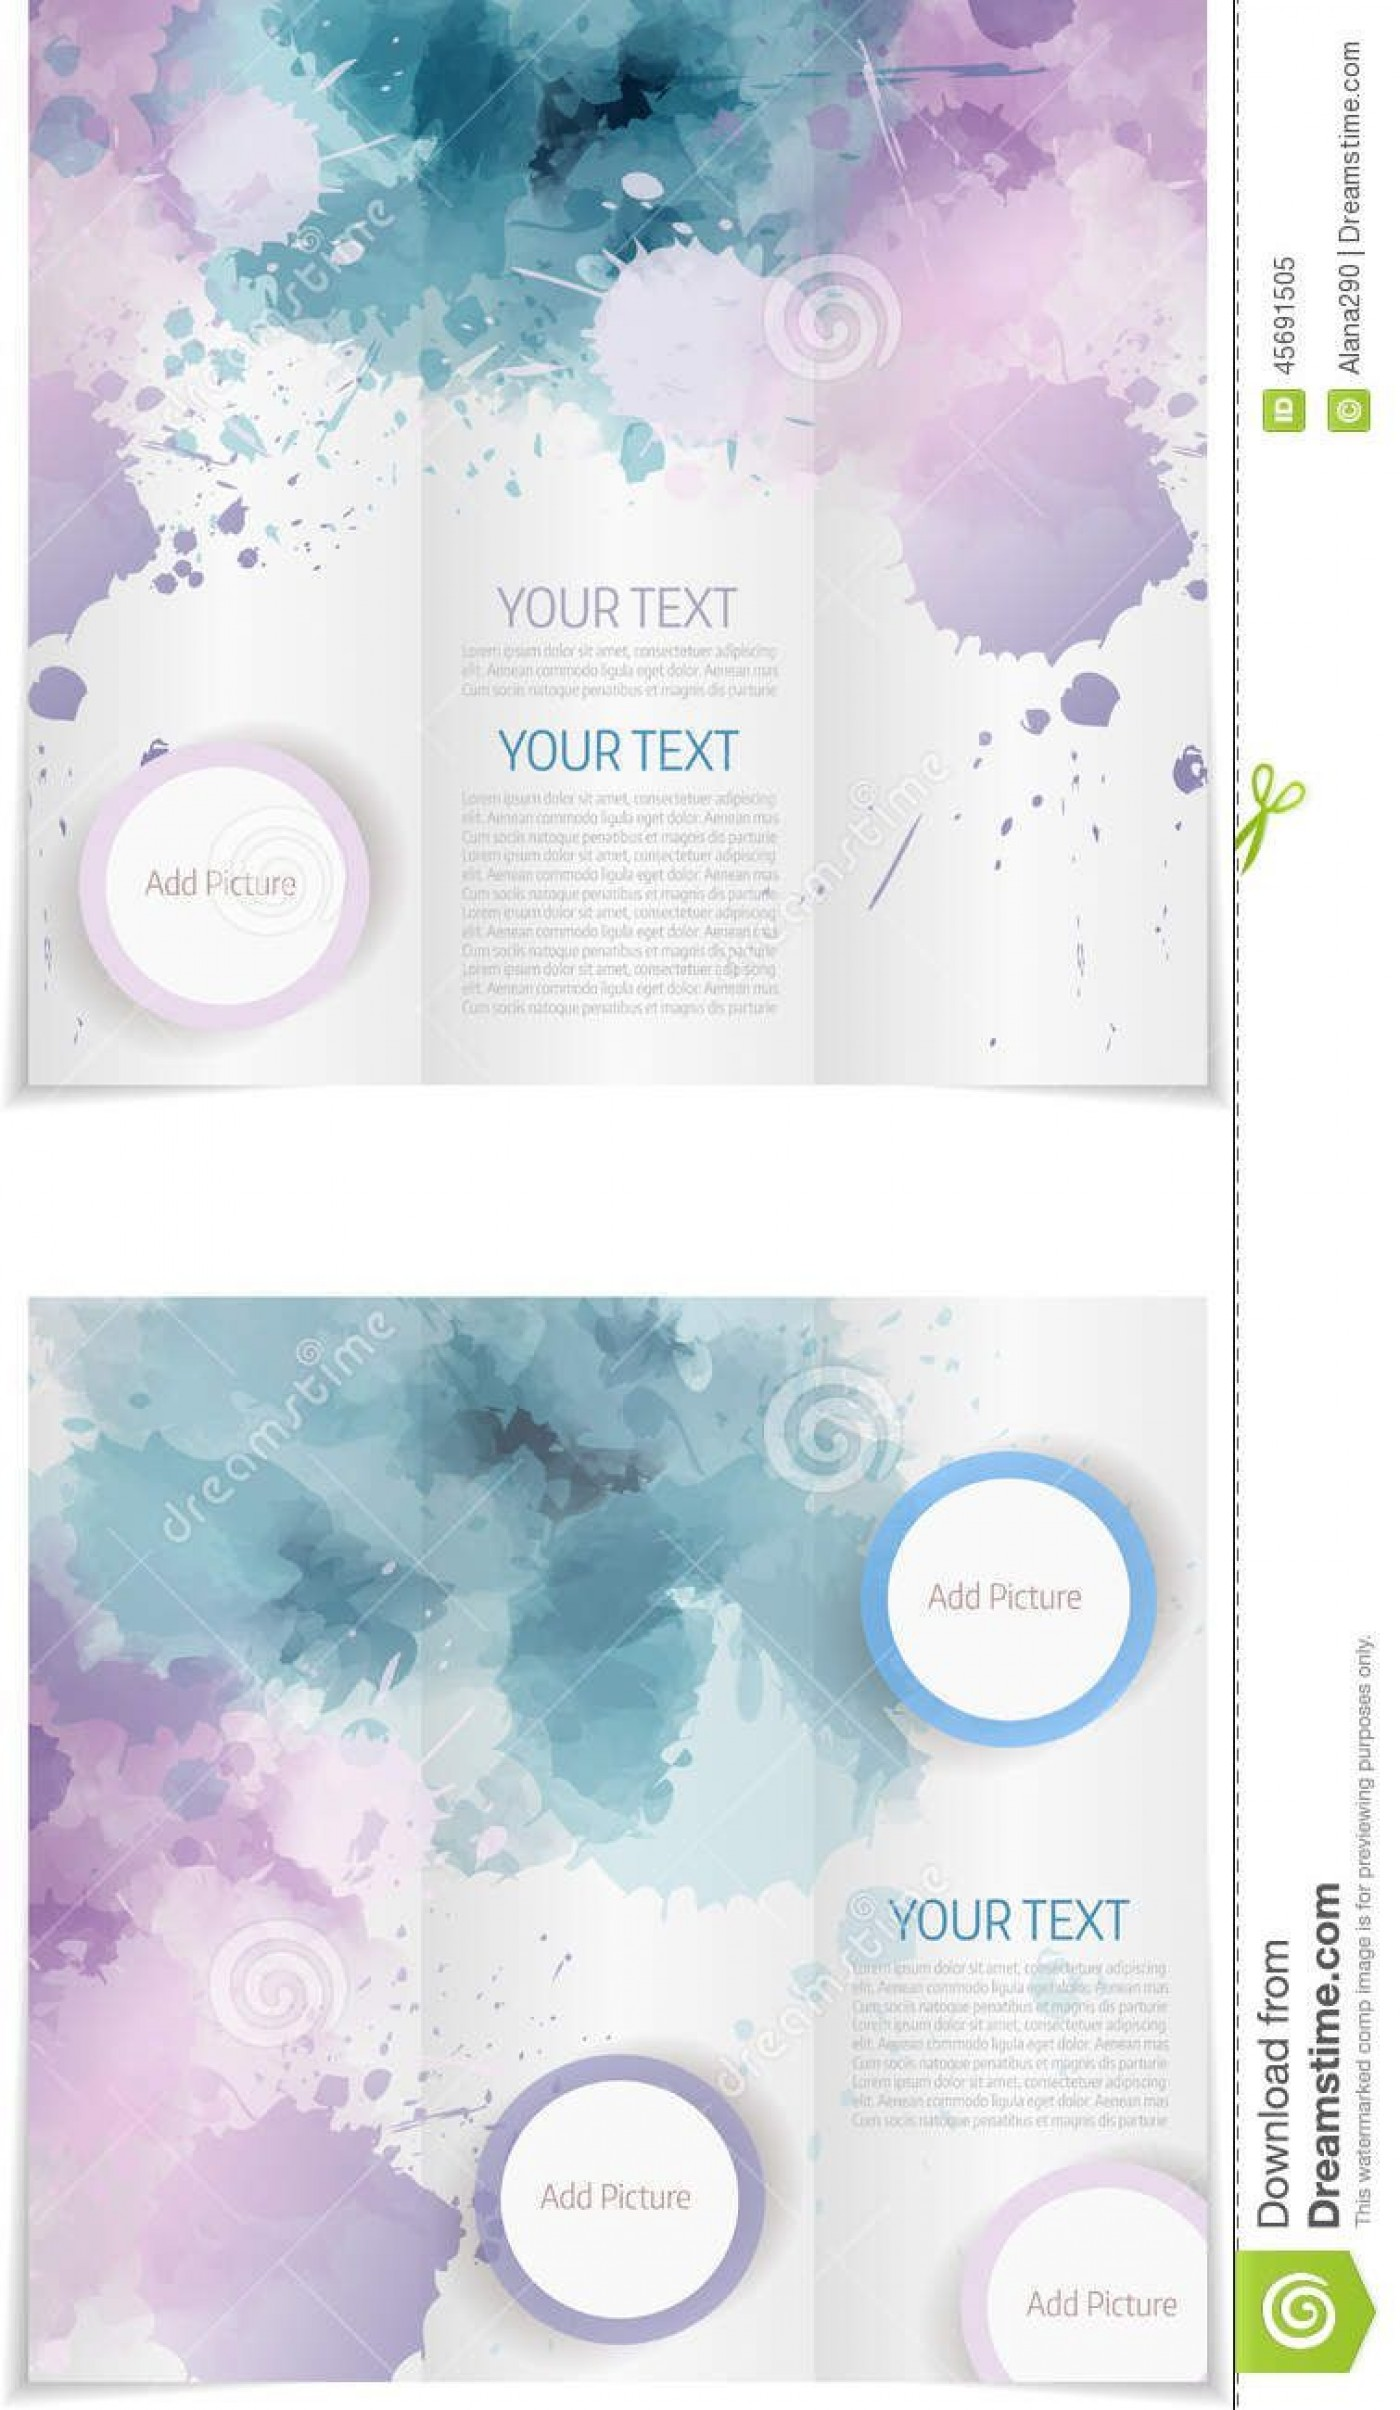 010 Unbelievable M Word Tri Fold Brochure Template Highest Clarity  Microsoft Free Download1400